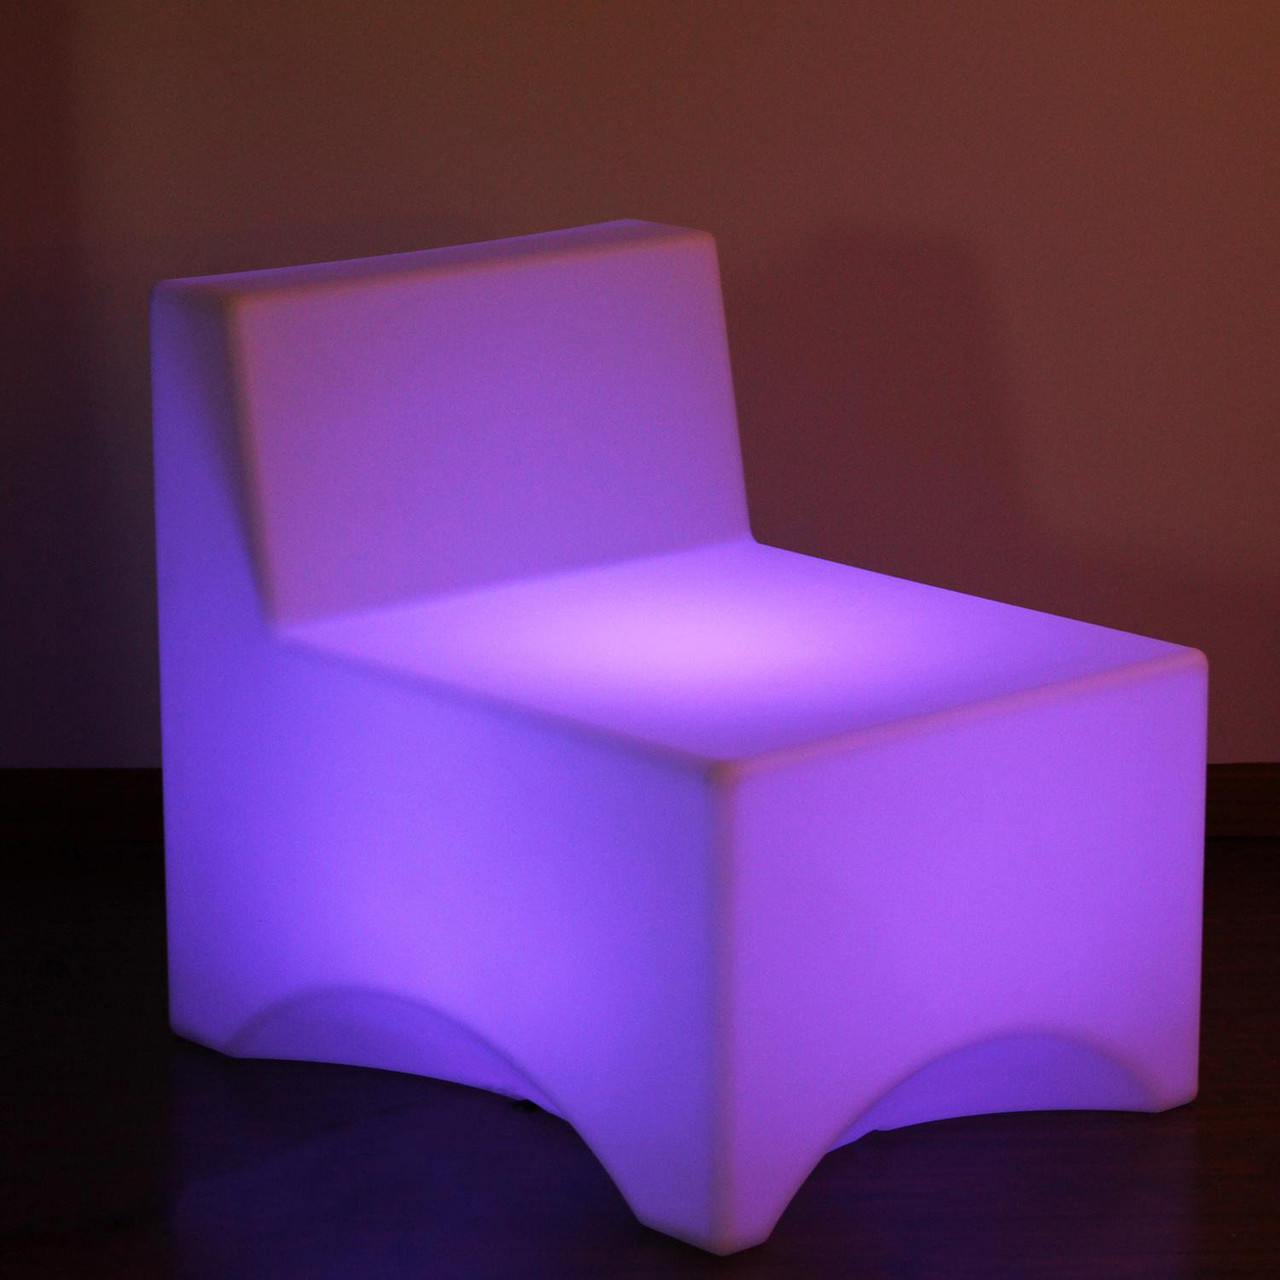 Tremendous Set Of 2 Led Lighted Color Changing Outdoor Patio Lounge Chairs With Remote Multi Lights 31369737 Spiritservingveterans Wood Chair Design Ideas Spiritservingveteransorg